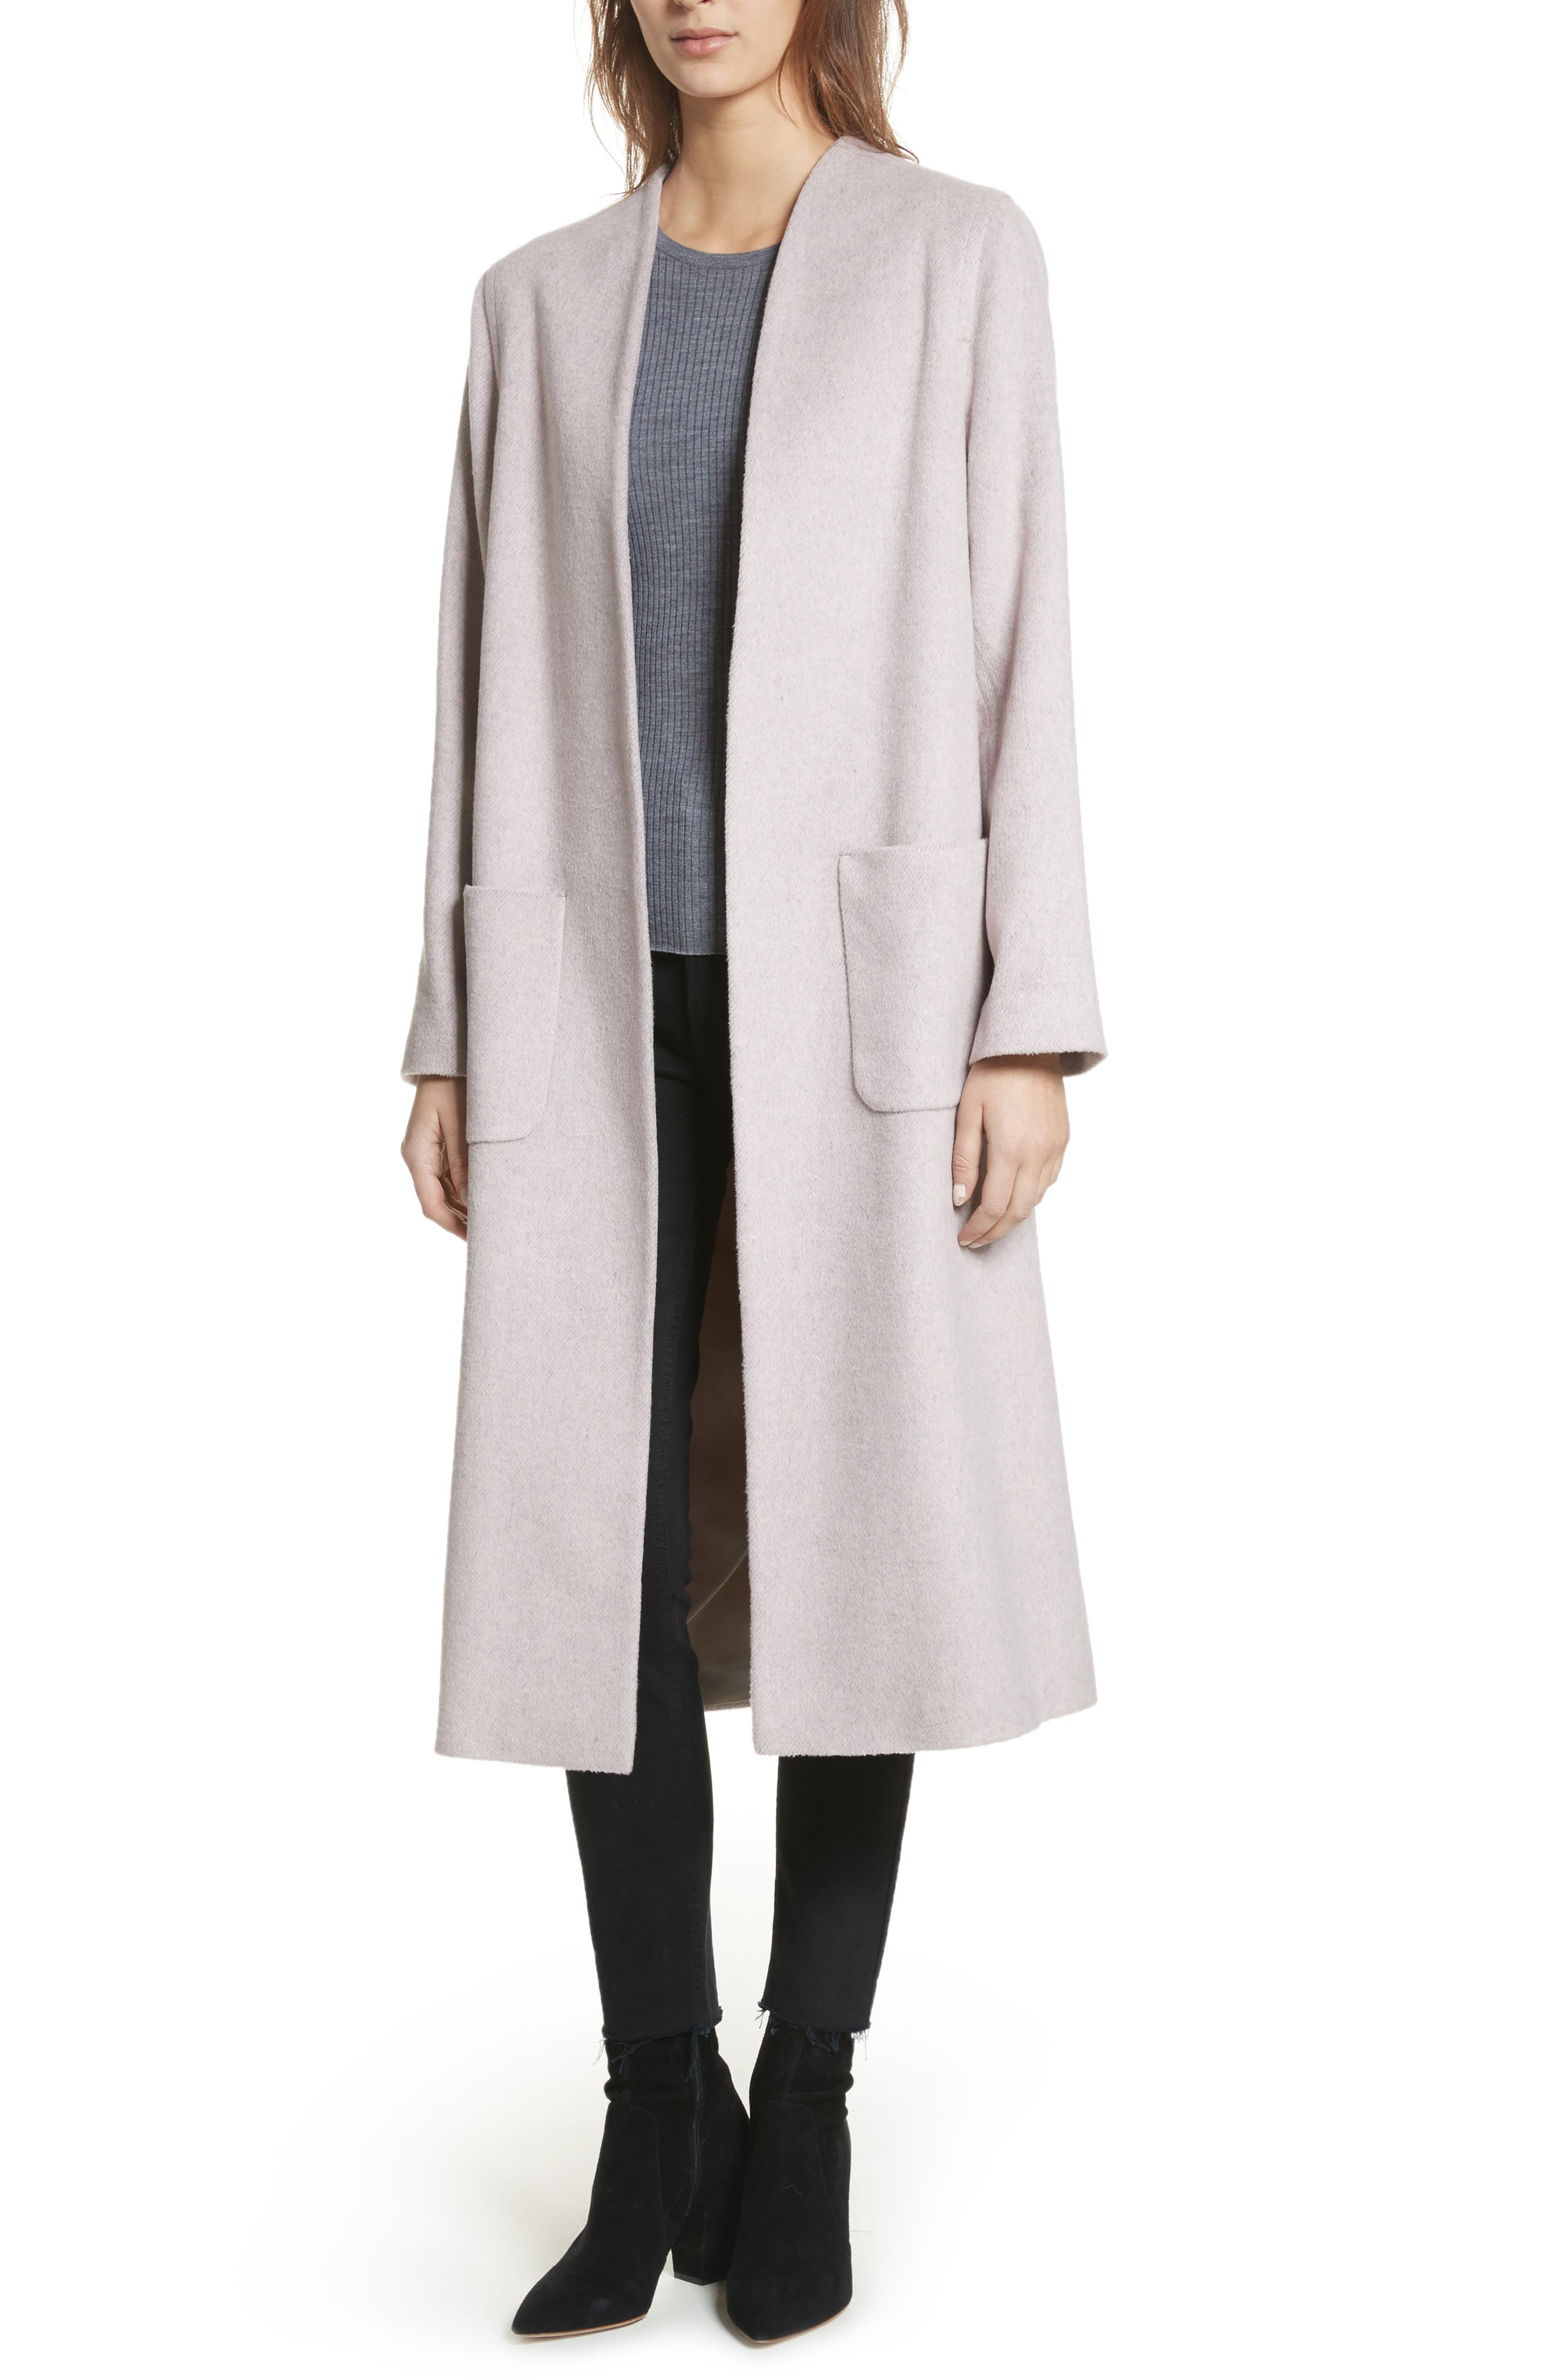 Edge to Edge Coat,                         Main,                         color, Pale Pink